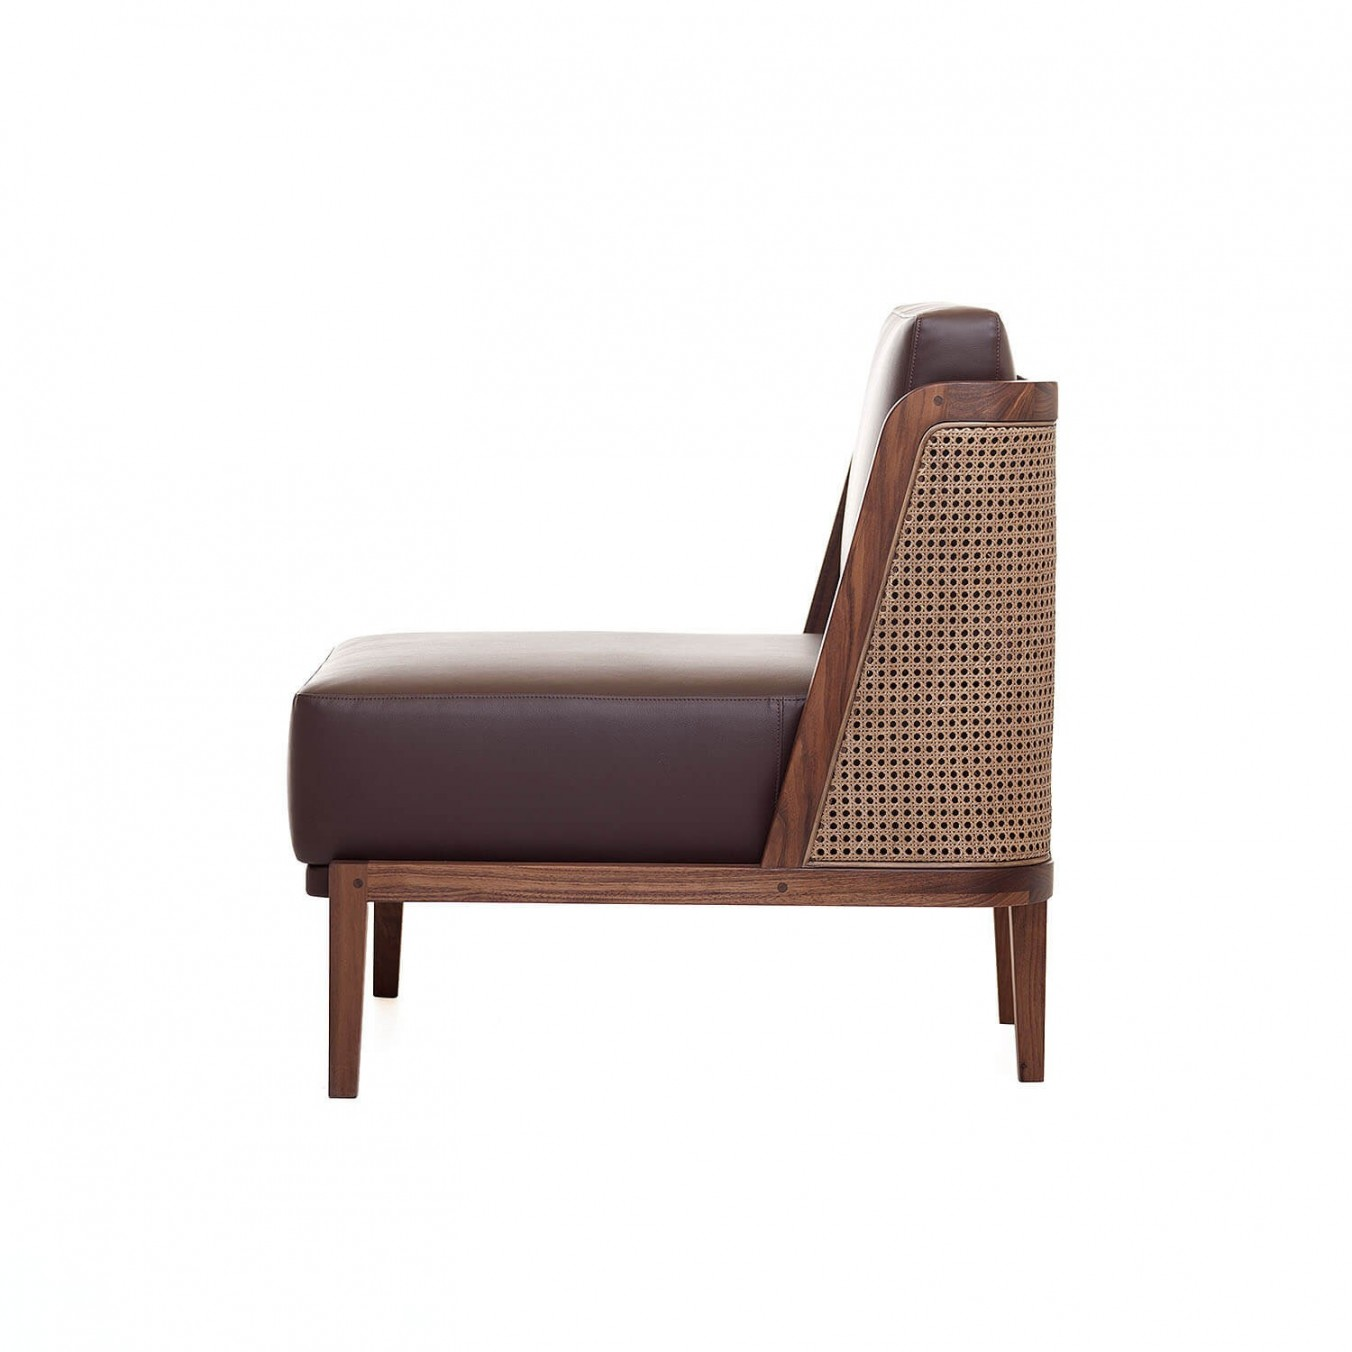 Rattan Lounge Chair Philippines Throne Lounge Chair With Rattan Kooku